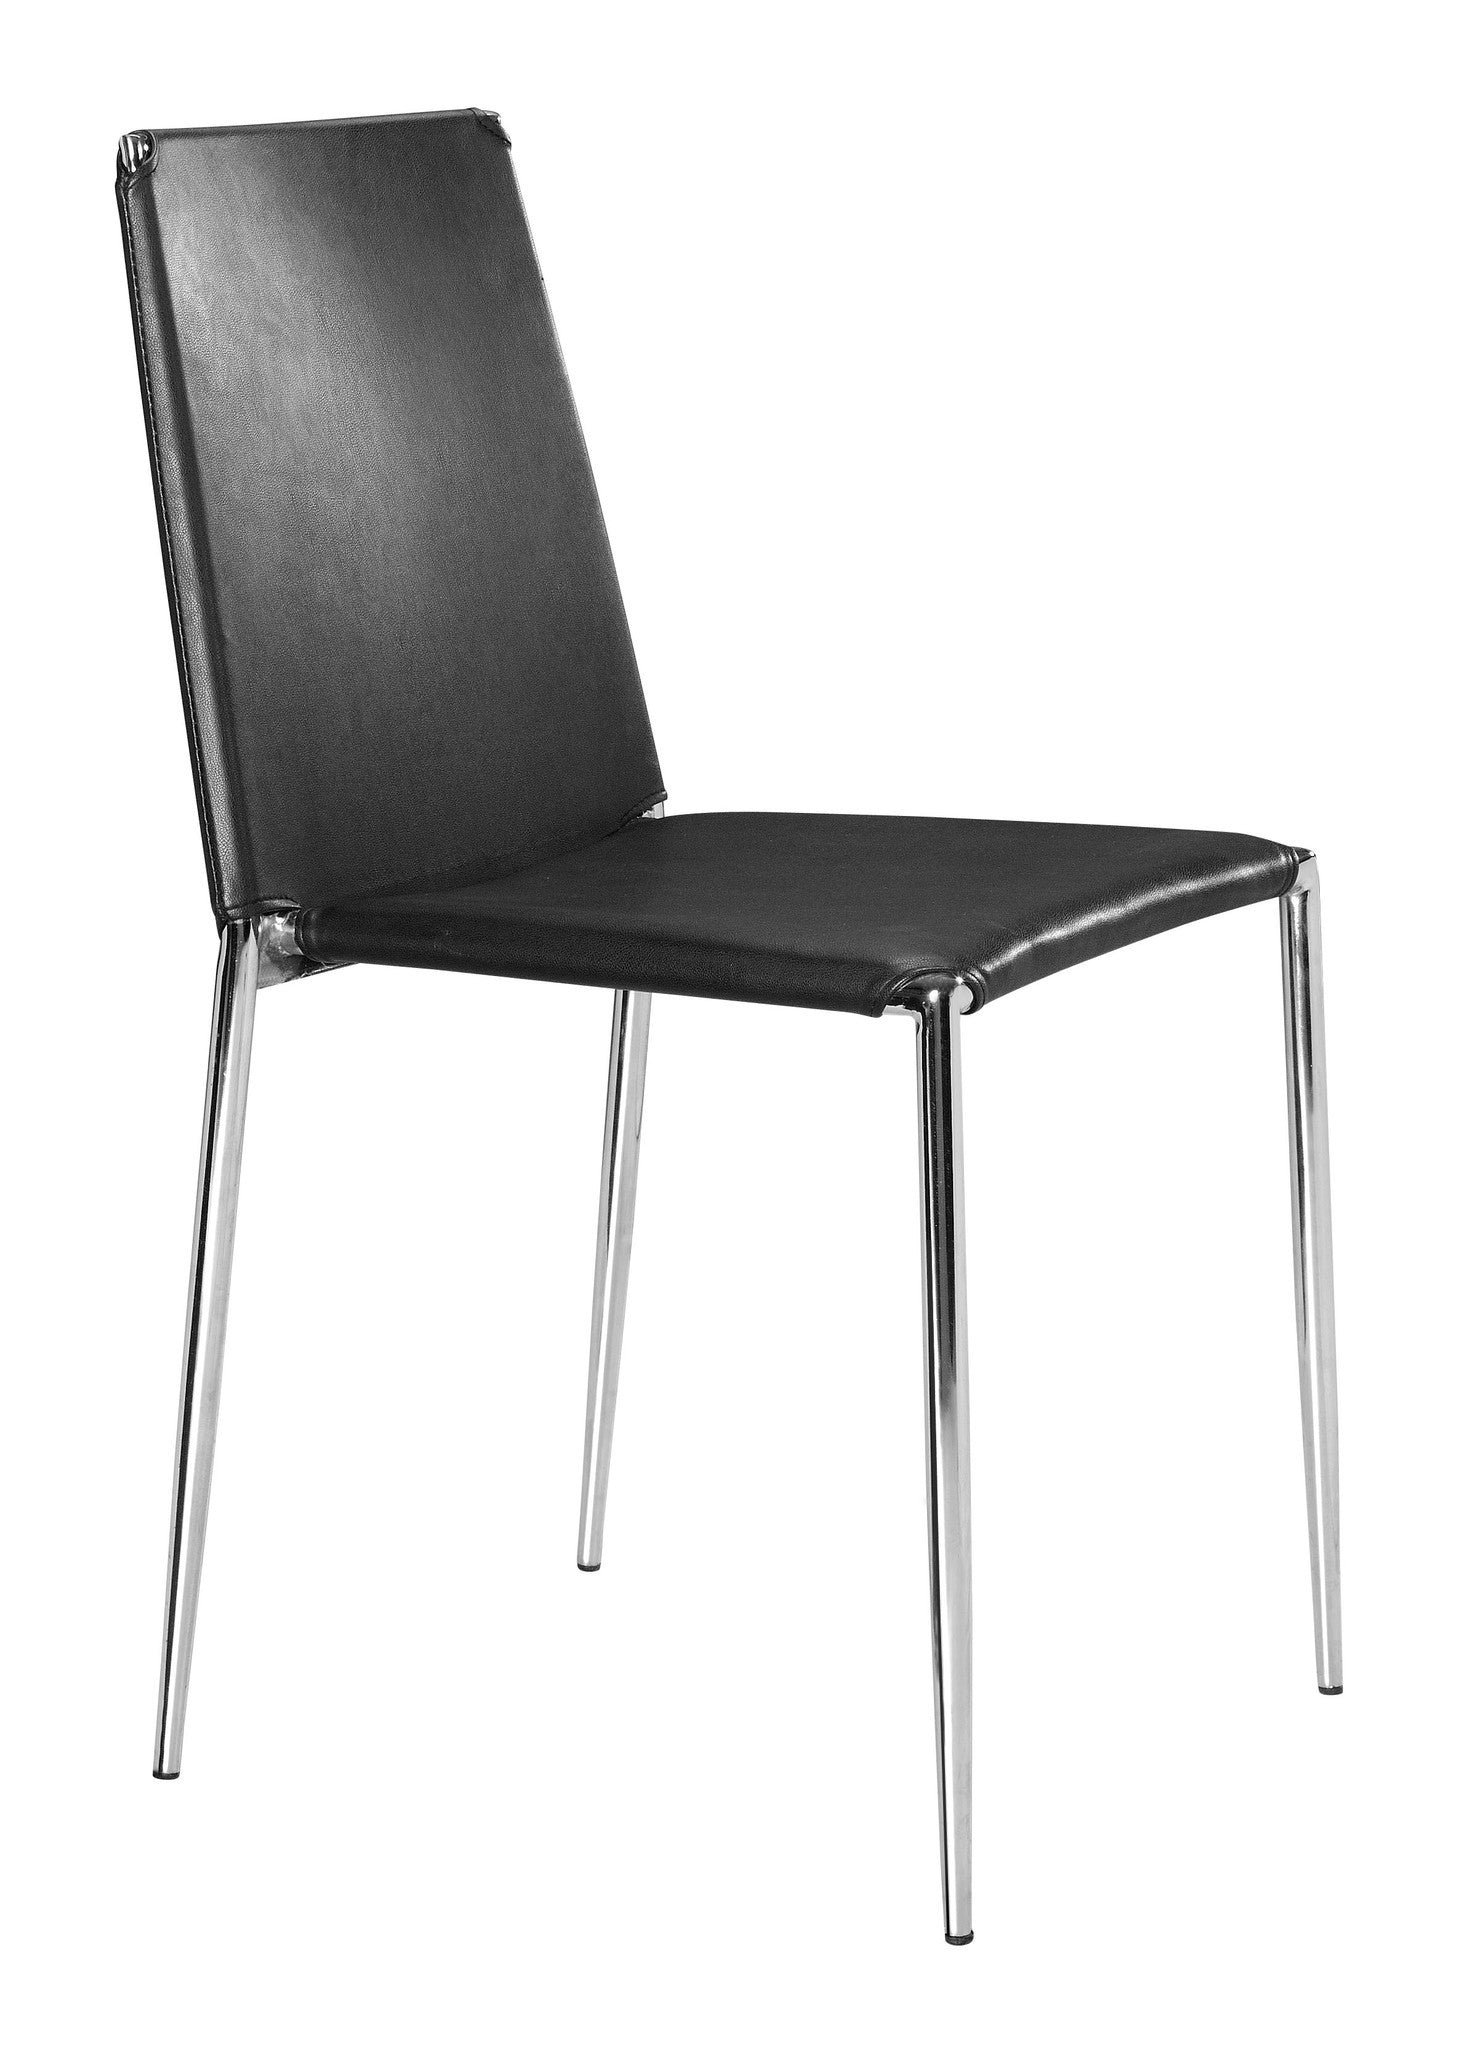 Modern Contemporary Rustic & Industrial Dining Chairs